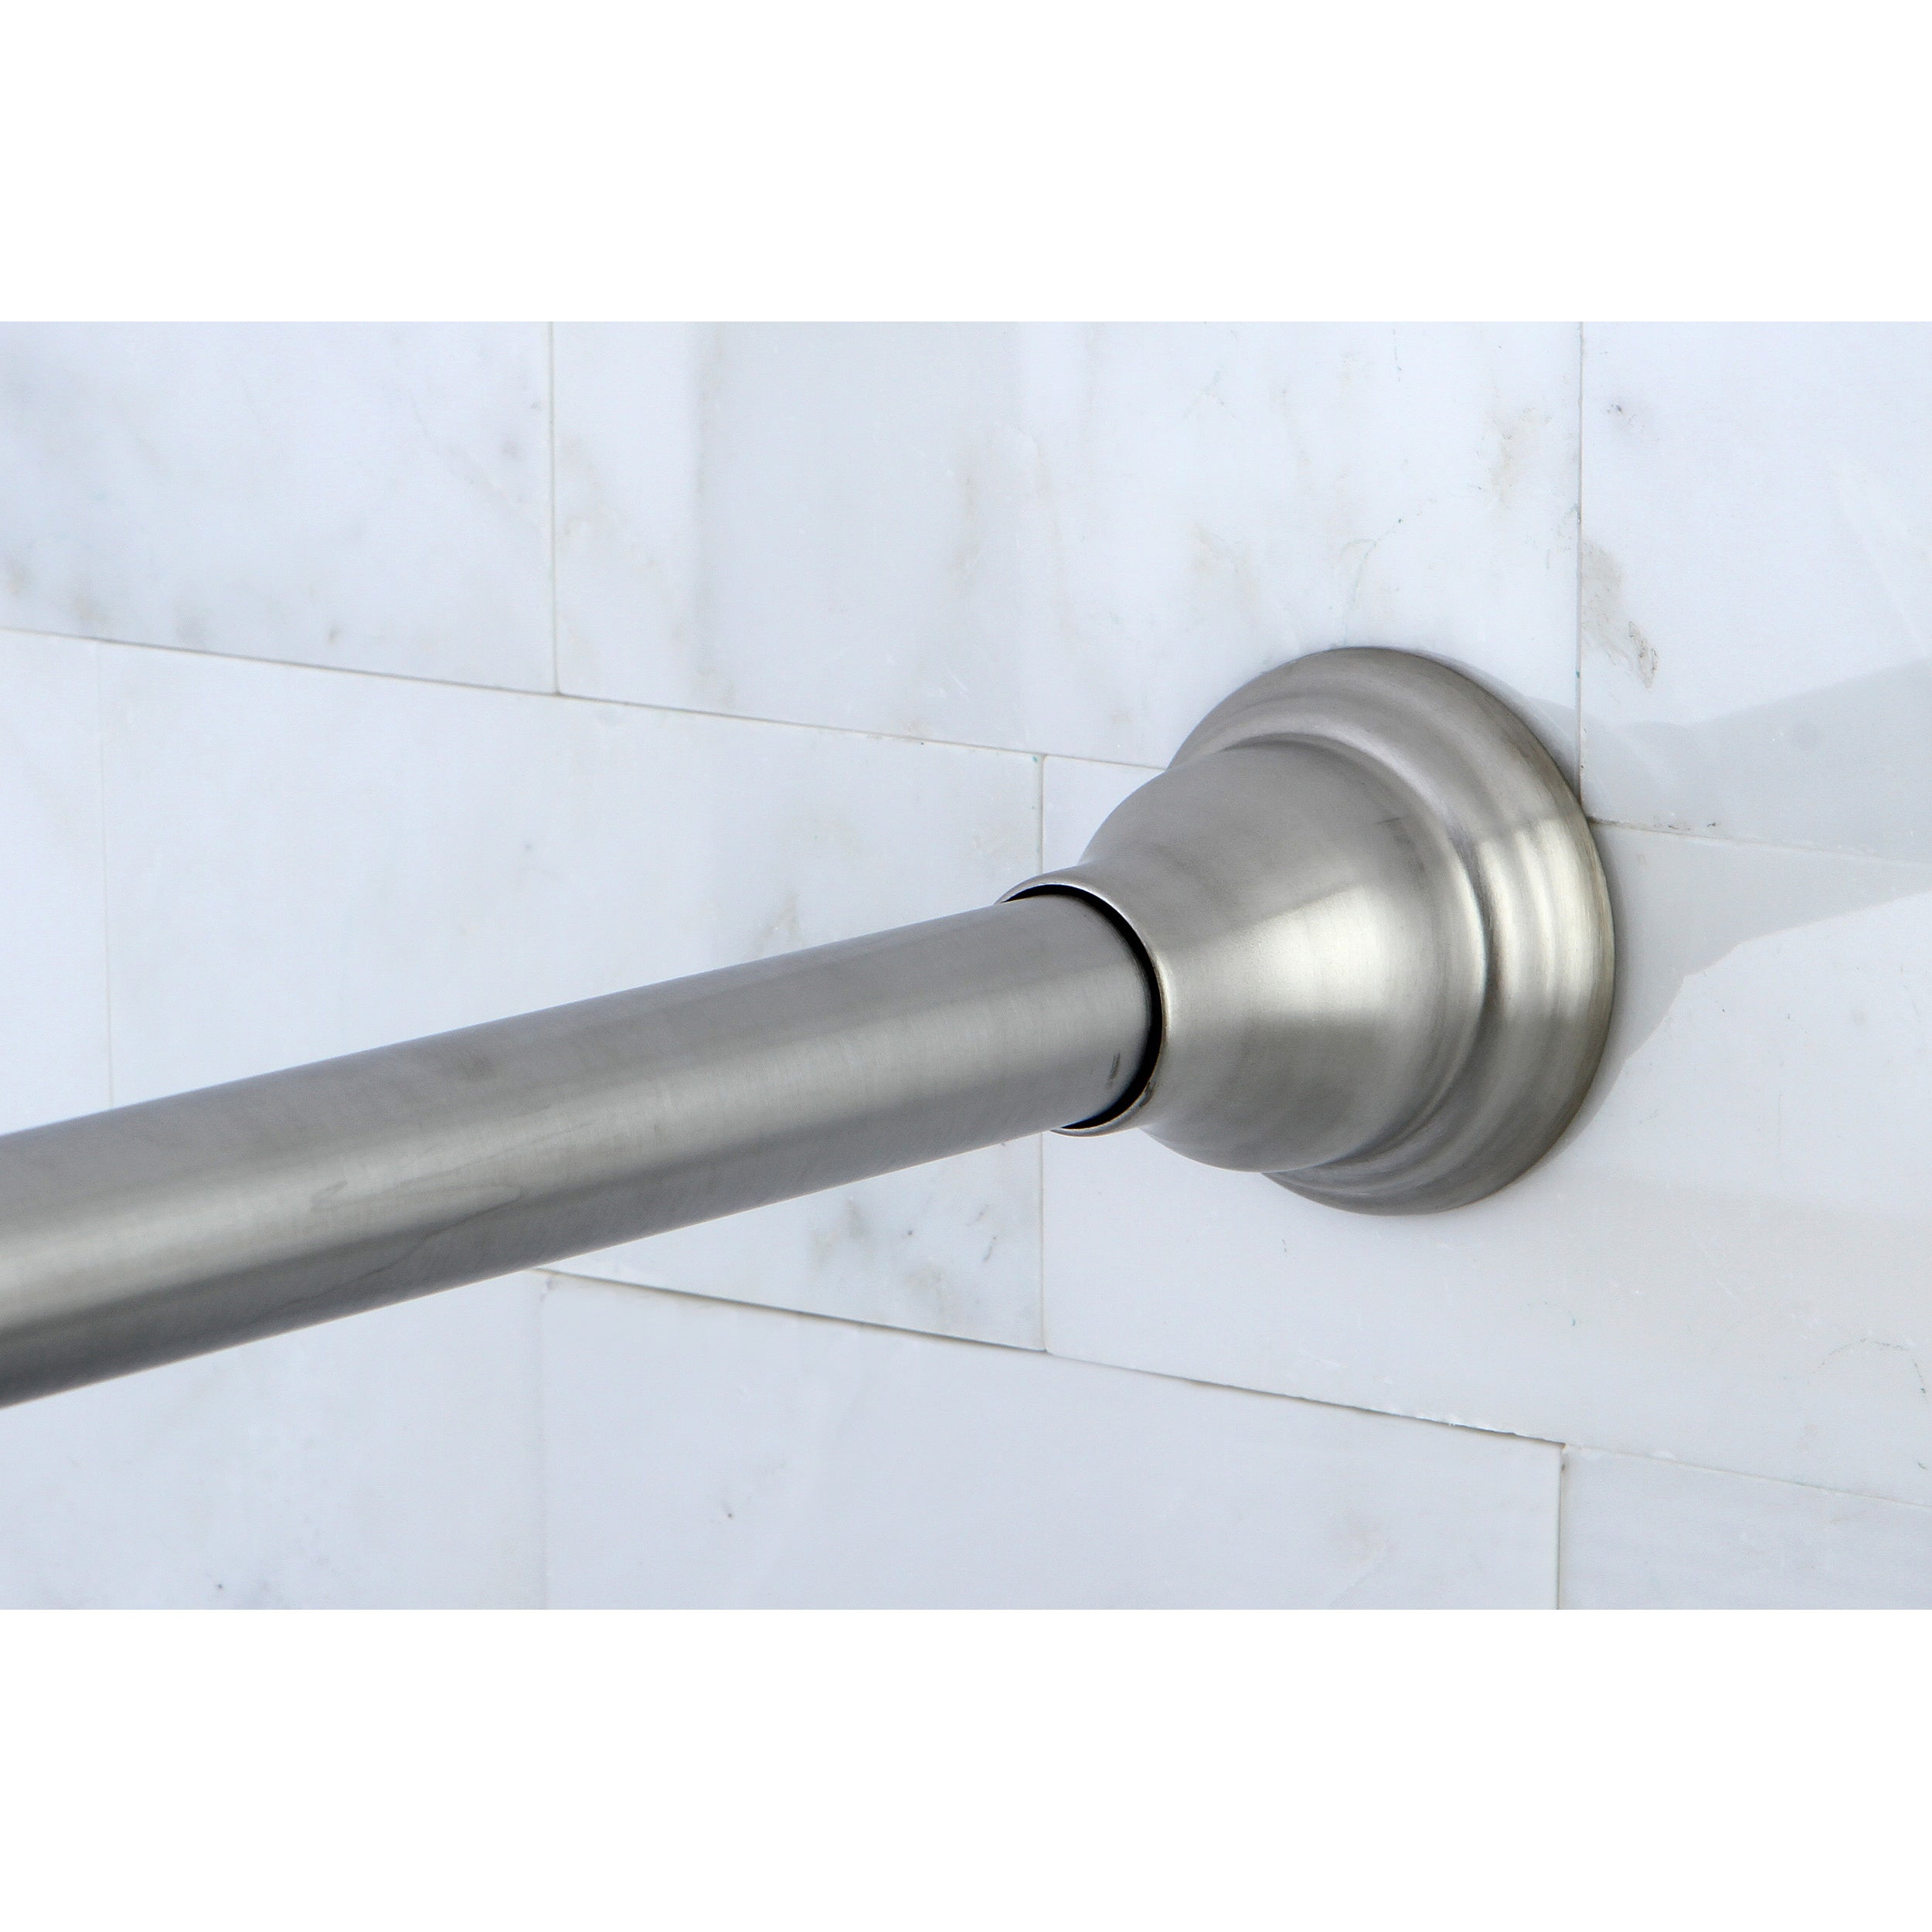 Details About Brushed Nickel Adjustable Shower Curtain Rod N A N A Transitional Vintage